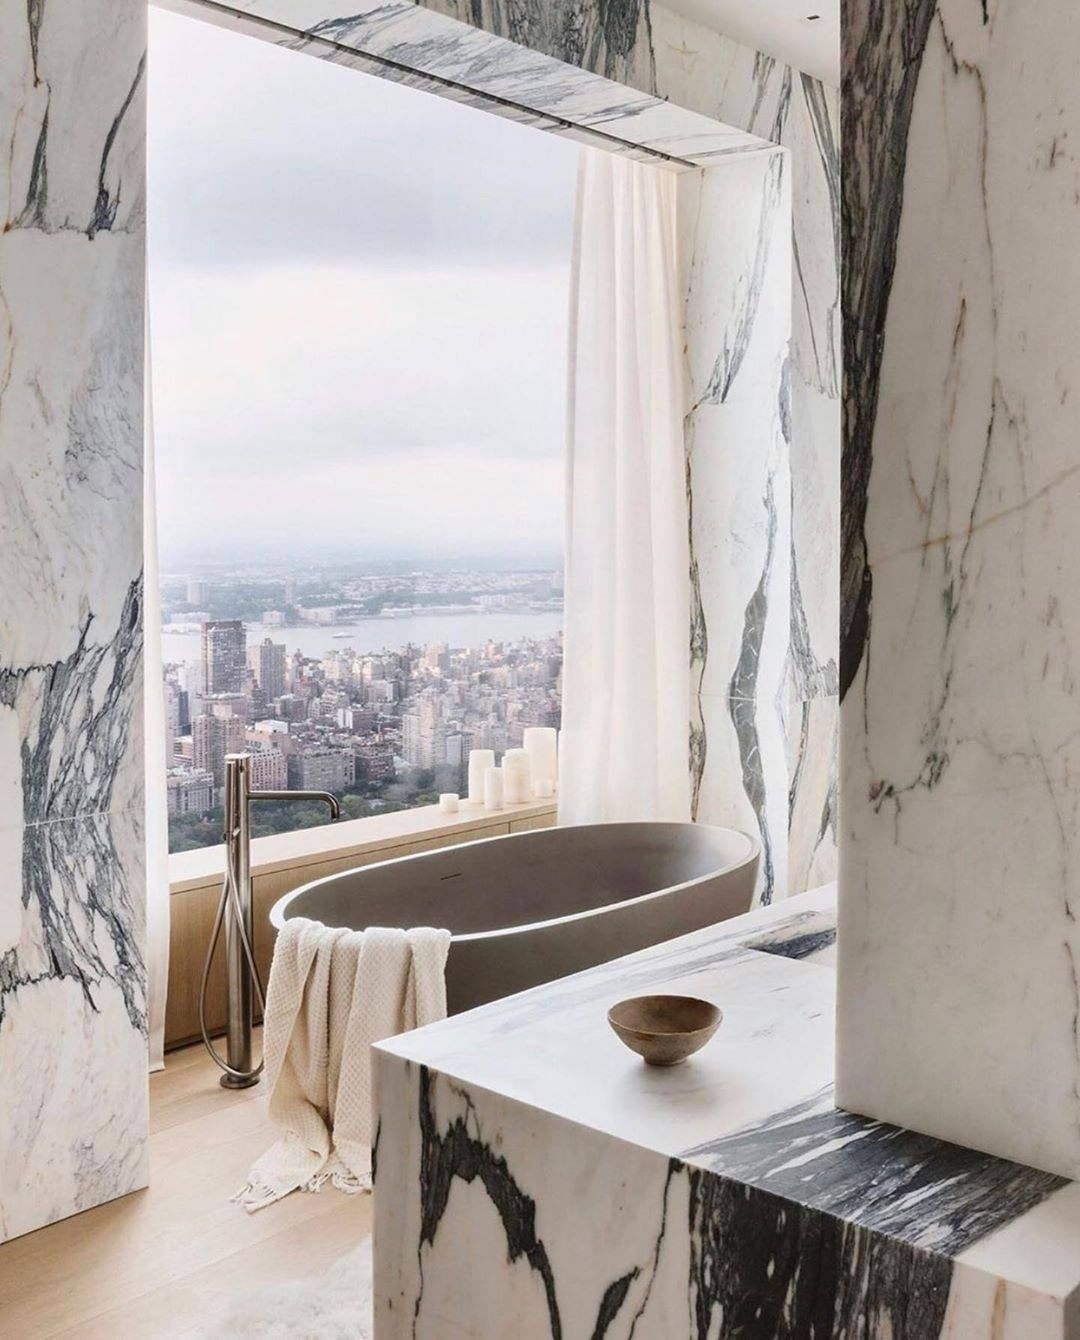 Bathroom With a View, bathroom, view, design, bathtub, maison valentina, bathroom  Bathroom With a View: 7 Captivating Designs Julie Hilmans